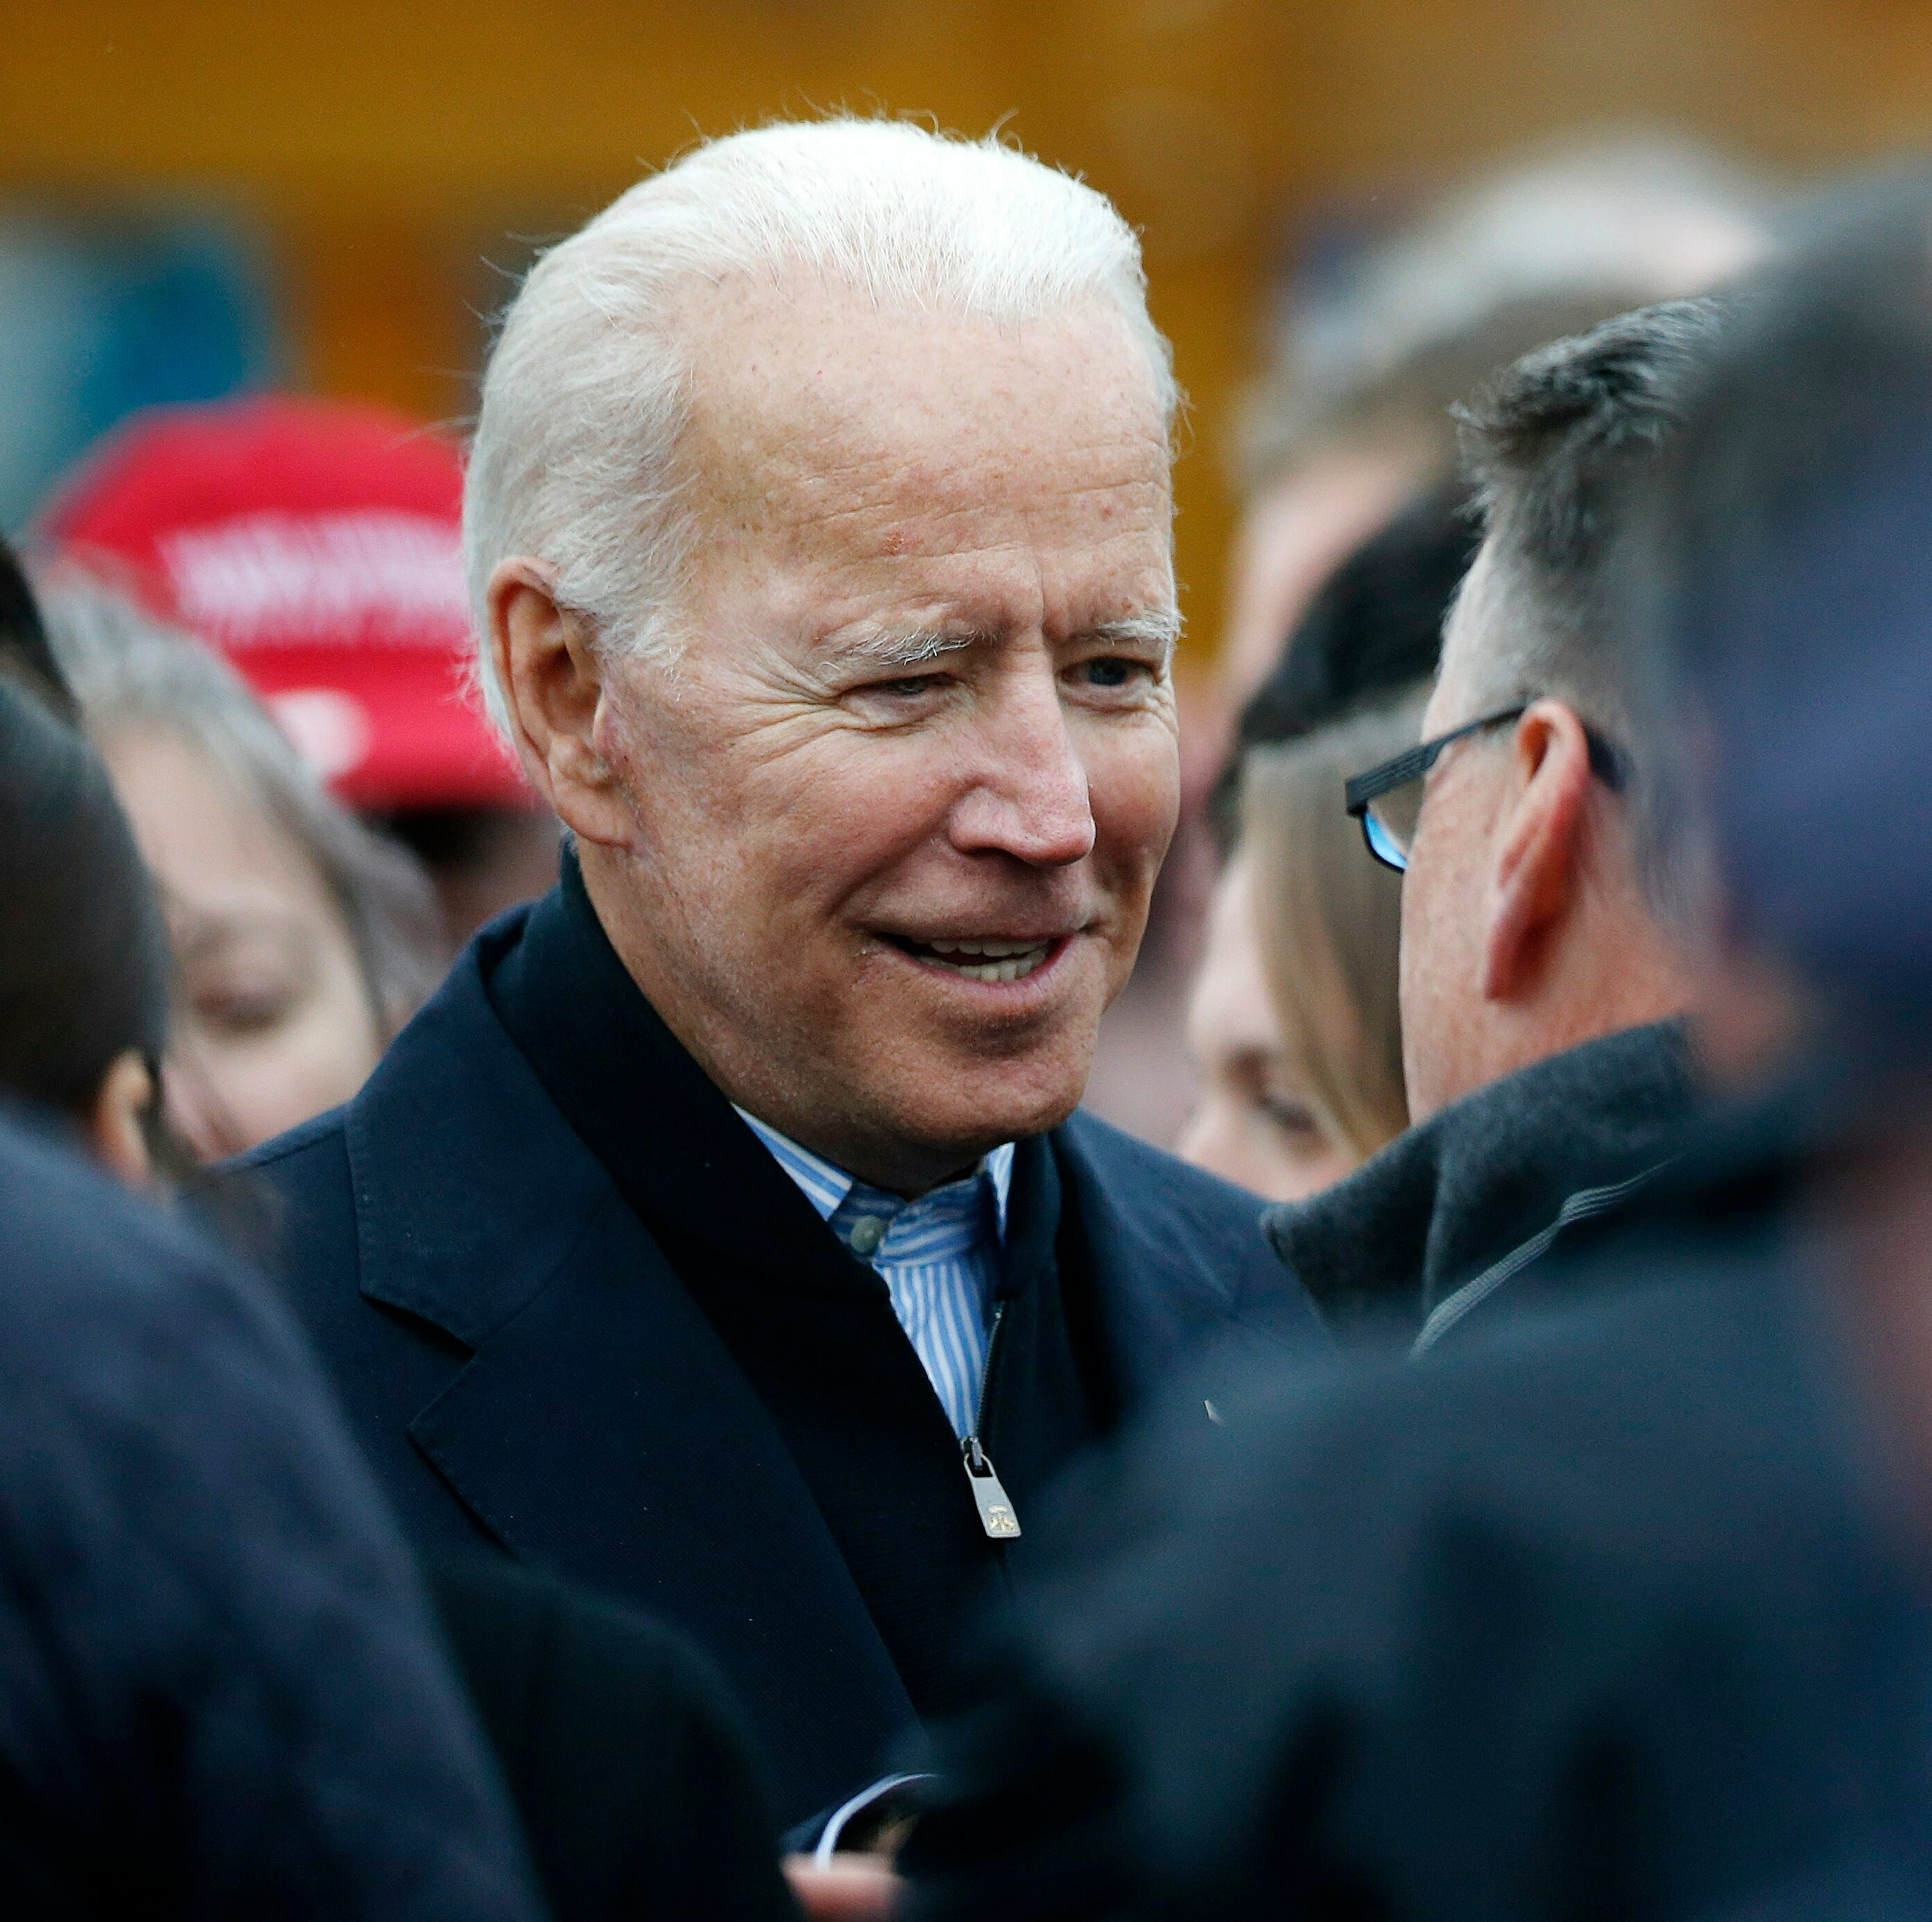 Joe Biden expected to launch 2020 presidential campaign next week